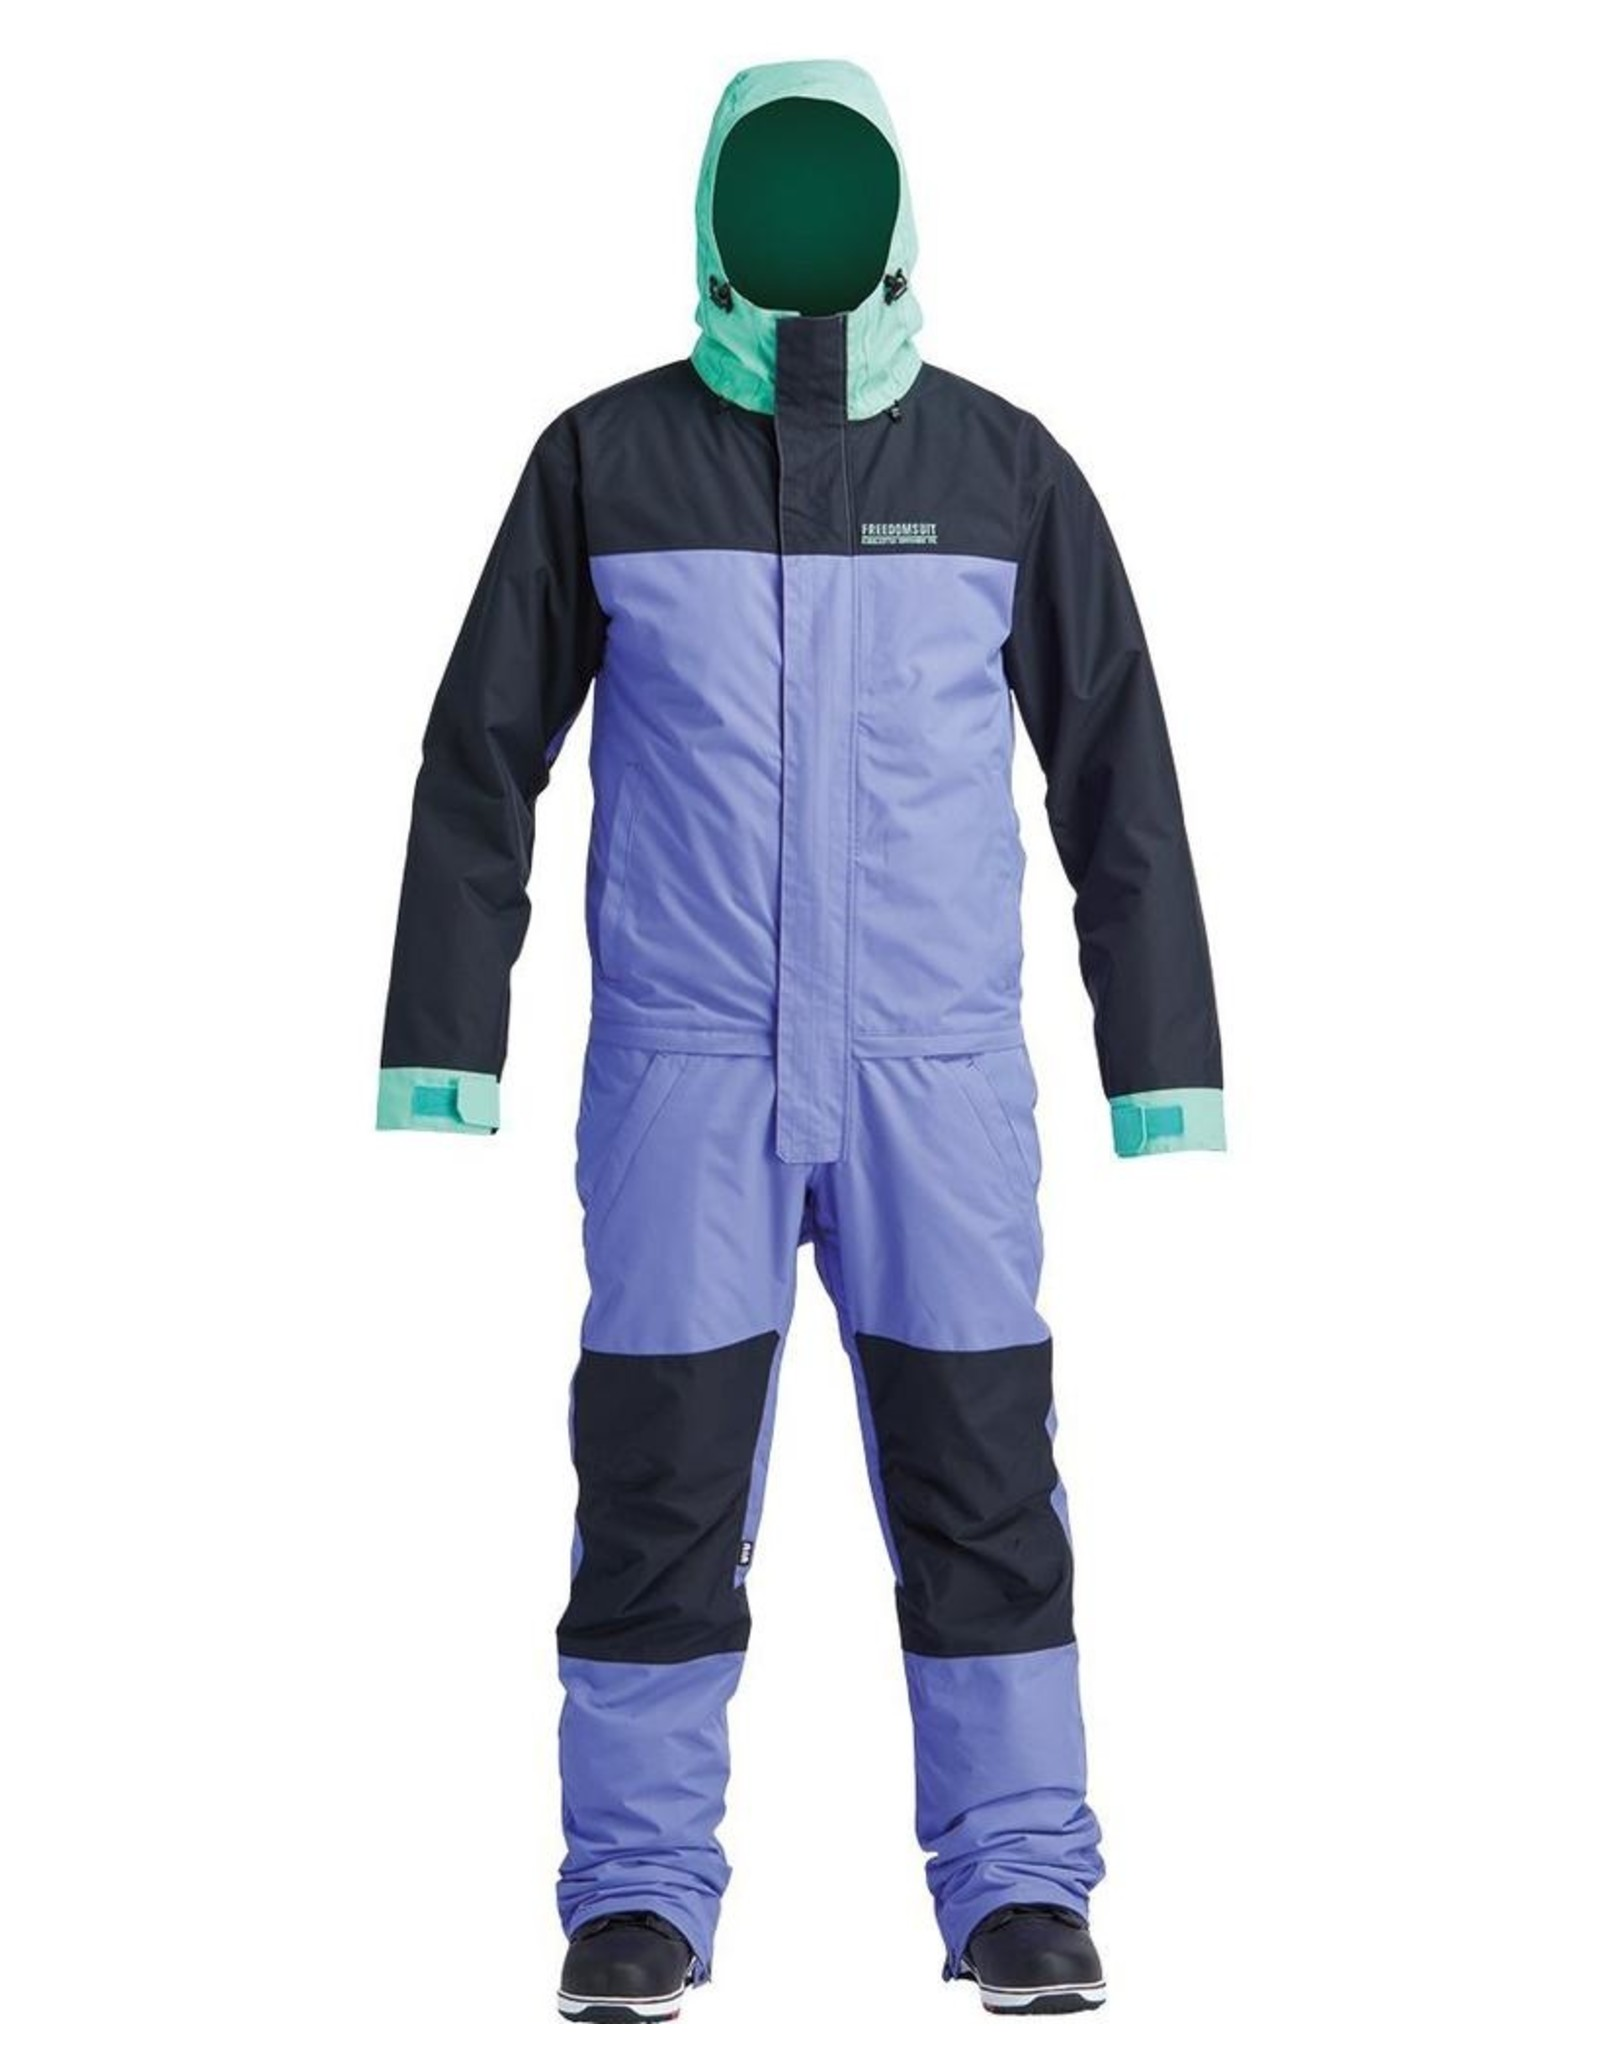 Airblaster Airblaster - Insulated Freedom Suit − L